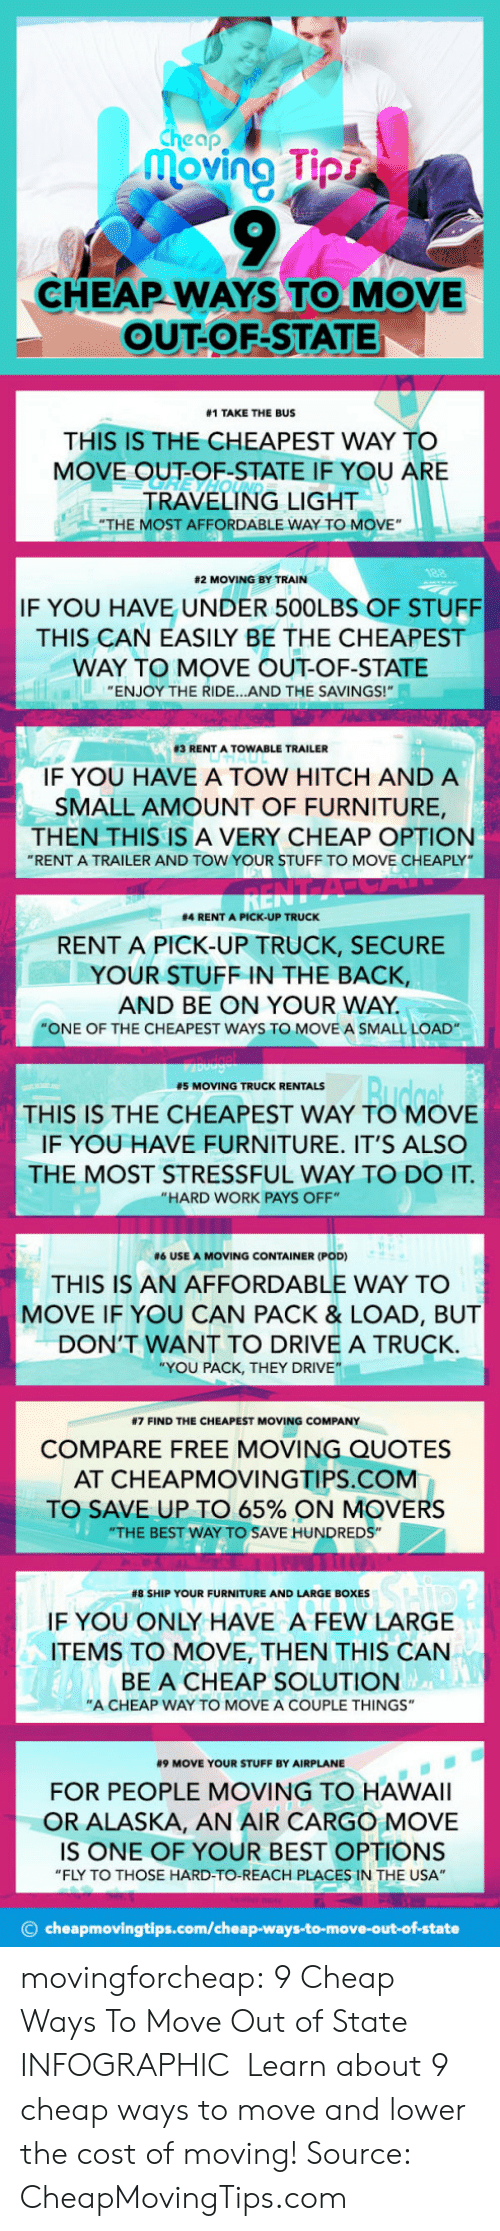 """Ridings: cheap  oving pr  CHEAP WAYS TO MOVE  OUT-OF-STATE  #1 TAKE THE BUS  THIS IS THE CHEAPEST WAY TO  MOVE OUT-OF-STATE IF YOU A  RE  TRAVELING LIGHT  """"THE MOST AFFORDABLE WAY TO MOVE""""  82 MOVING BY TRAIN  IF YOU HAVE UNDER 500LBS OF STUFF  THIS CAN EASILY BE THE CHEAPEST  WAY TO MOVE OUT-OF-STATE  ENJOY THE RIDE...AND THE SAVINGS!  83 RENT A TOW ABLE TRAILER  IF YOU HAVE A TOW HITCH AND A  SMALL AMOUNT OF FURNITURE,  THEN THIS IS A VERY CHEAP OPTION  """"RENT A TRAILER AND TOW YOUR STUFF TO MOVE CHEAPLY  #4 RENT A PICK-UP TRUCK  RENT A PICK-UP TRUCK, SECURE  YOUR STUFF IN THE BACK,  AND BE ON YOUR WAY  """"ONE OF THE CHEAPEST WAYS TO MOVE A SMALL LOAD  #5 MOVING TRUCK RENTALS  THIS IS THE CHEAPEST WAY TO MOVE  IF YOU HAVE FURNITURE. IT'S ALSO  THE MOST STRESSFUL WAY TO DO IT  """"HARD WORK PAYS OFF""""  #6 USE A MOVING CONTAINER (POD)  THIS IS AN AFFORDABLE WAY TO  MOVE IF YOU CAN PACK & LOAD, BUT  DON'T WANT TO DRIVE A TRUCK  YOU PACK, THEY DRIVE""""  #7 FIND THE CHEAPEST MOVING COMPANY  COMPARE FREE MOVING QUOTES  AT CHEAPMOVINGTIPS.COM  TO SAVE UP TO 65% ON MOVERS  """"THE BEST WAY TO SAVE HUNDREDS""""  #8 SHIP YOUR FURNITURE AND LARGE BOXES  IF YOU ONLY HAVE A FEW LARGE  ITEMS TO MOVE, THEN THIS CAN  BE A CHEAP SOLUTION  """"A CHEAP WAY TO MOVE A COUPLE THINGS""""  #9 MOVE YOUR STUFF BY AIRPLANE  FOR PEOPLE MOVING TO HAWAlI  OR ALASKA, AN AIR CARGO MOVE  IS ONE OF YOUR BEST OPTIONS  """"FLY TO THOSE HARD-TO-REACH PLACES IN THE USA""""  © cheapmovingtips.com/cheap-ways-to-move-out-of-state movingforcheap: 9 Cheap Ways To Move Out of State INFOGRAPHIC   Learn about 9 cheap ways to move and lower the cost of moving!  Source: CheapMovingTips.com"""